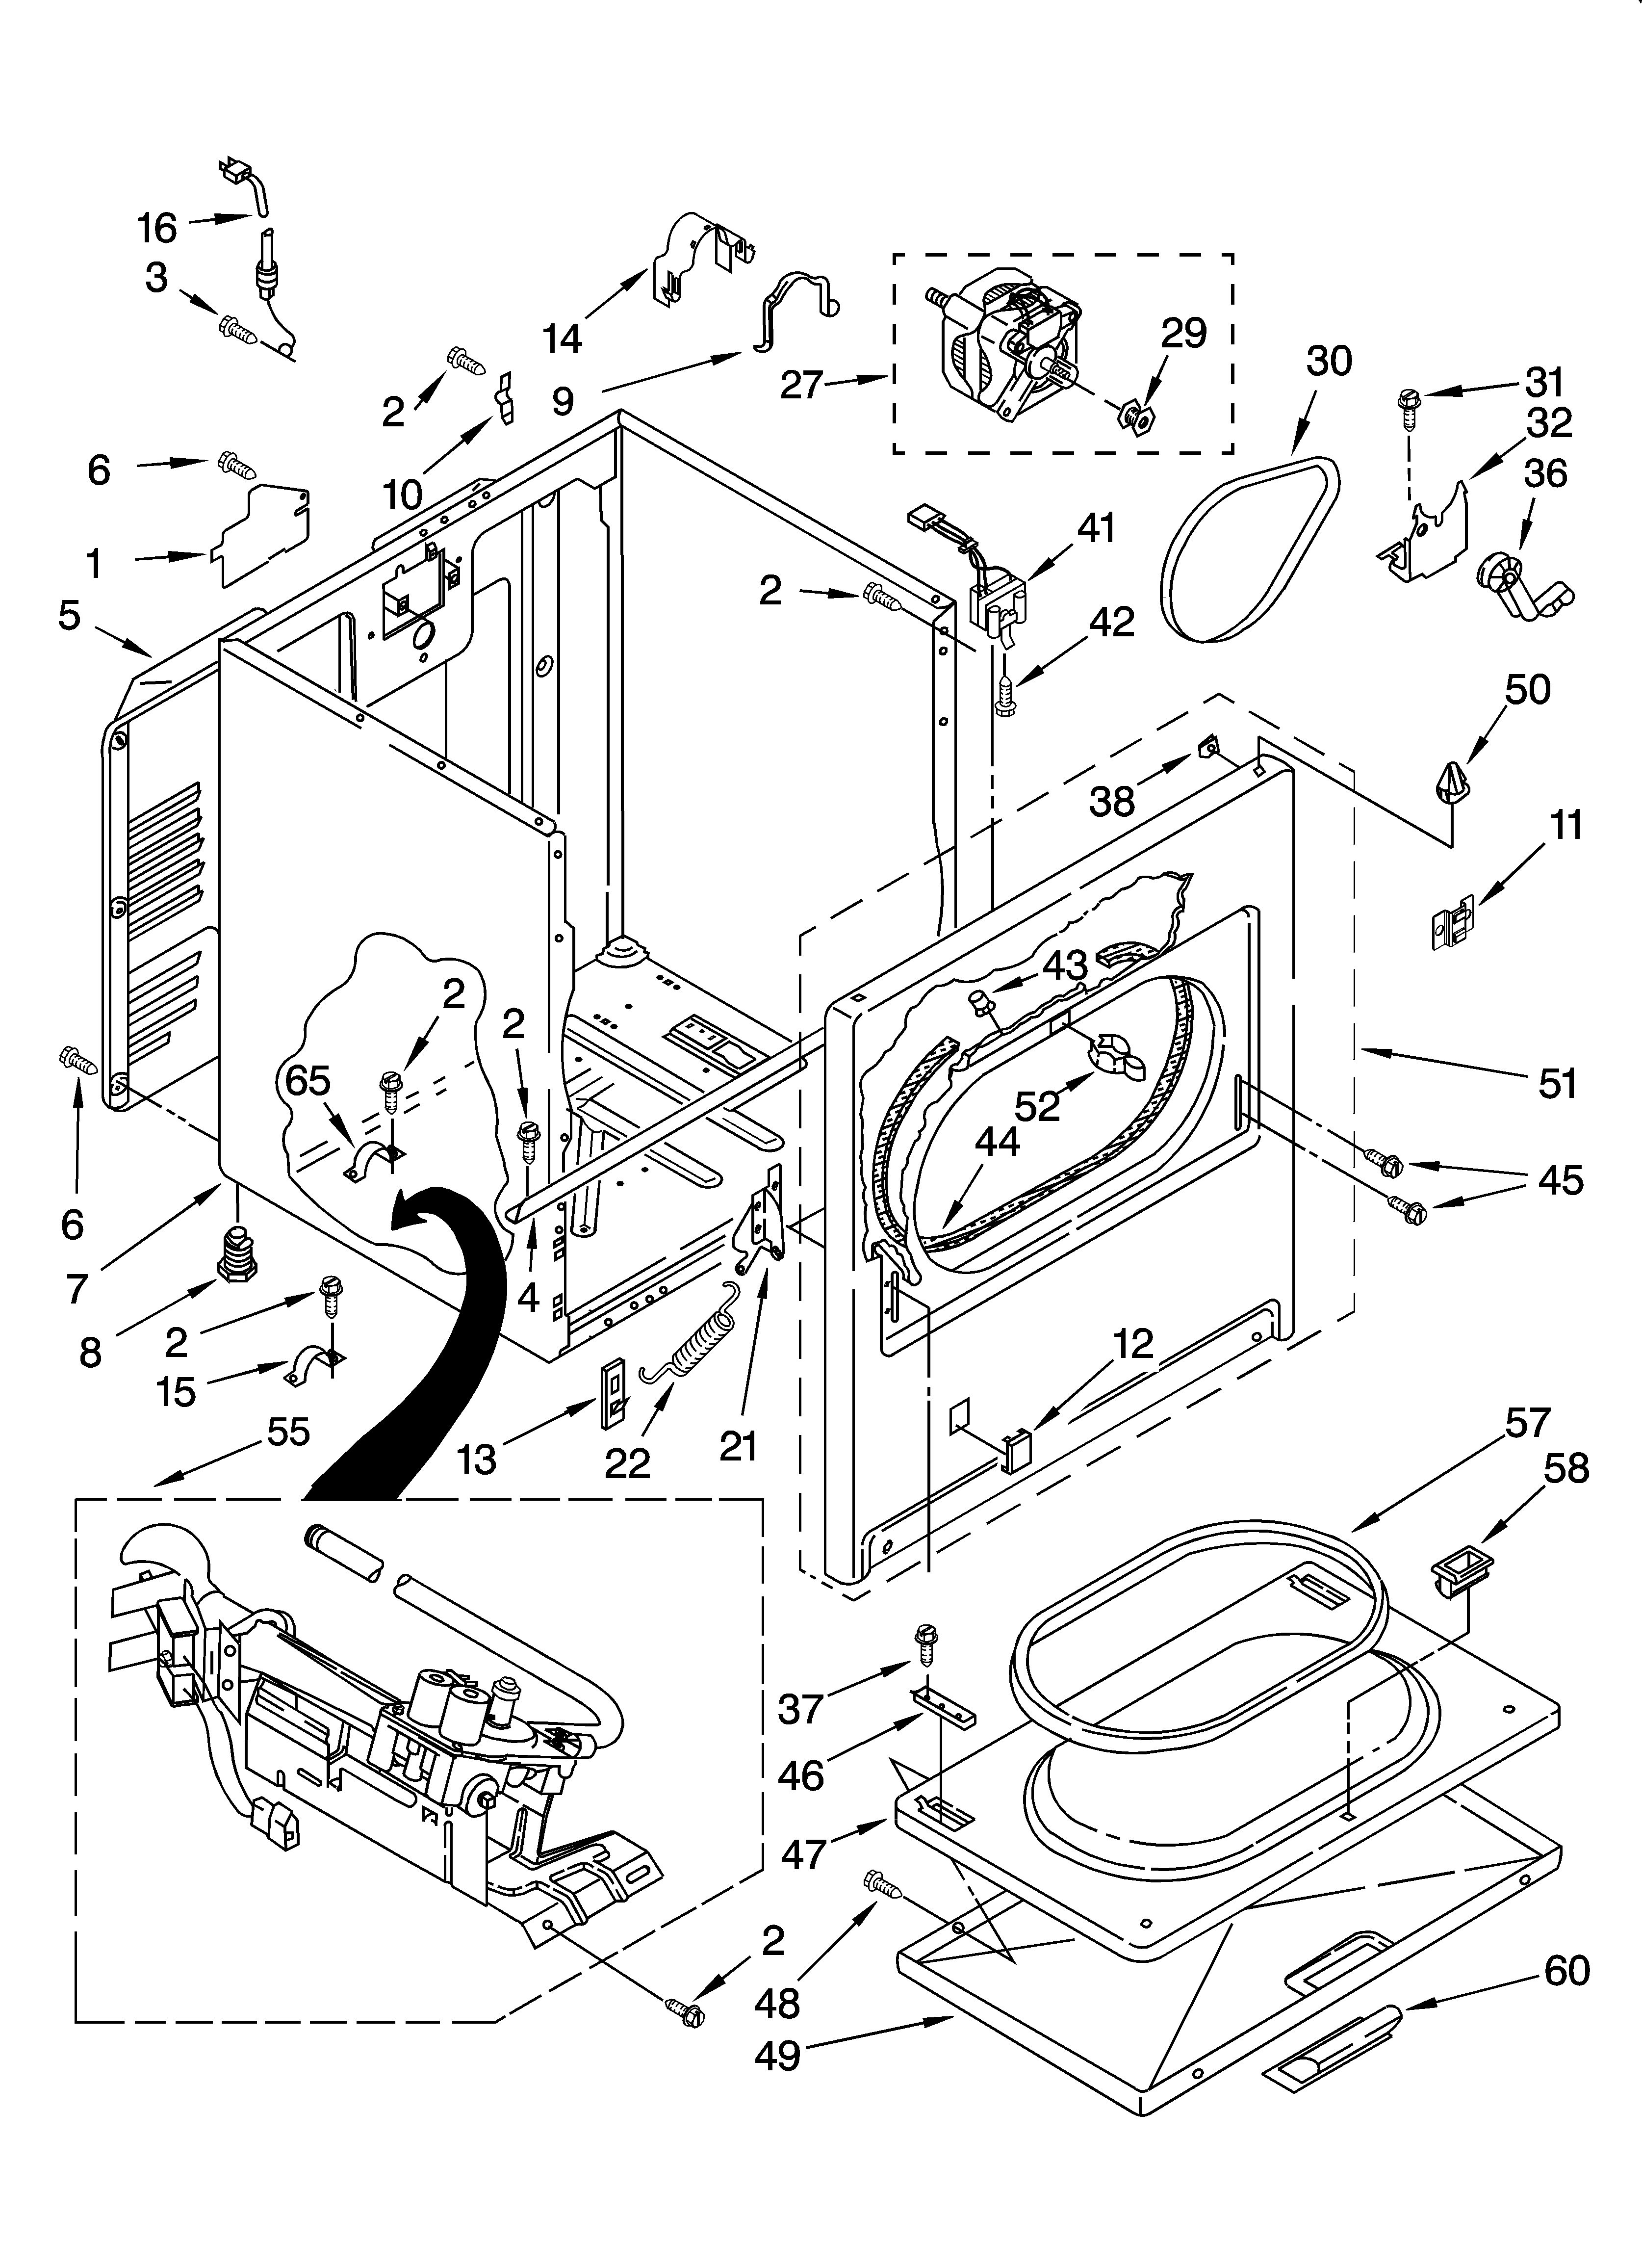 Download Kenmore 80 Series Dryer Repair Manual Pdf free